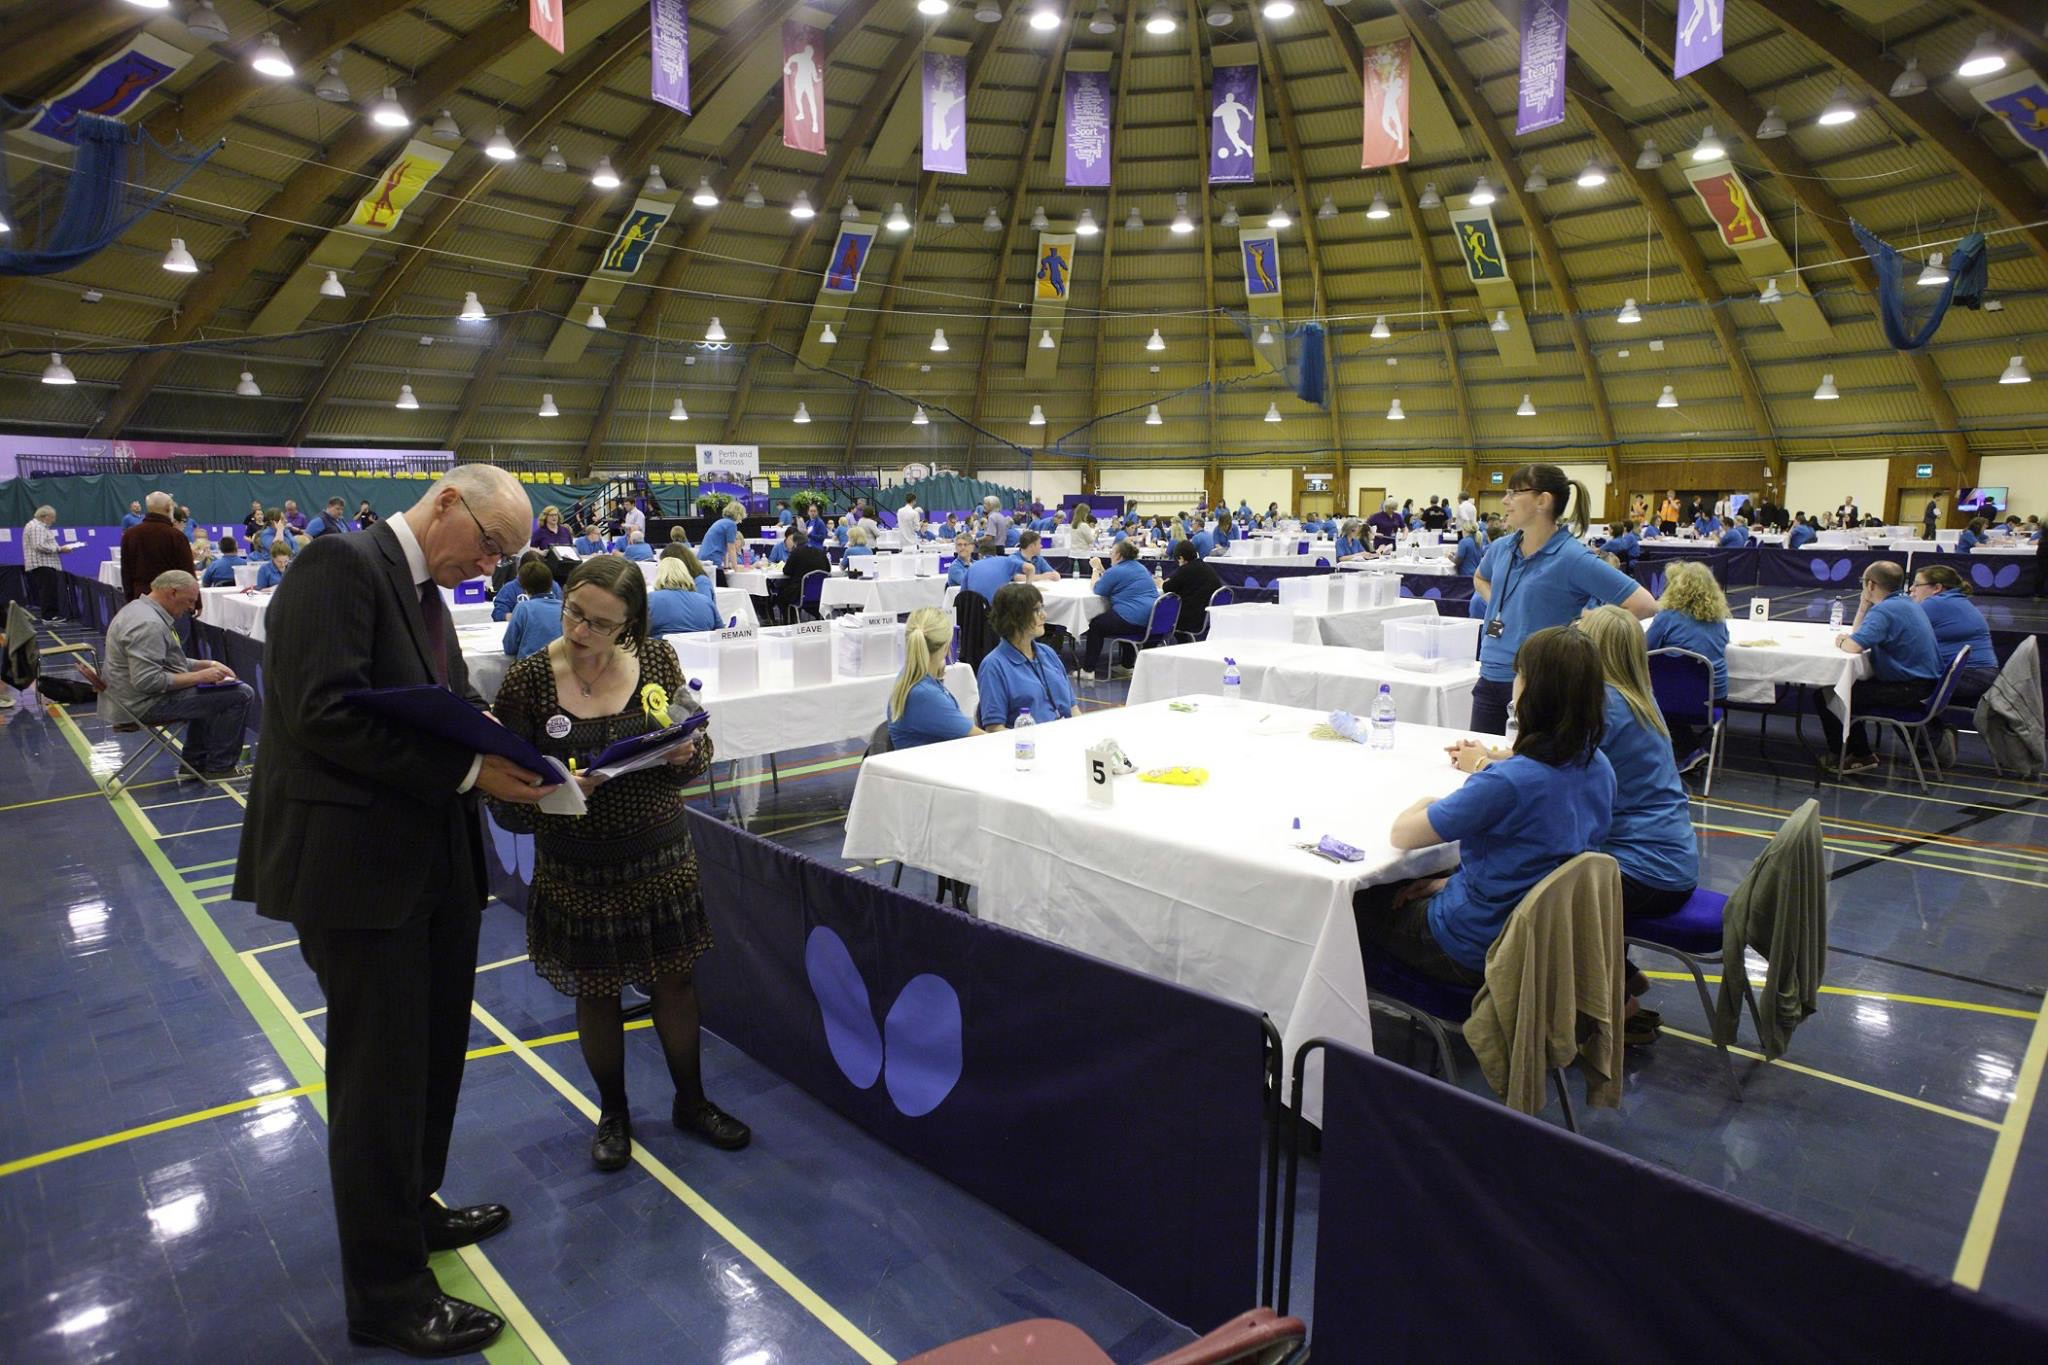 John Swinney at the Perth and Kinross count.